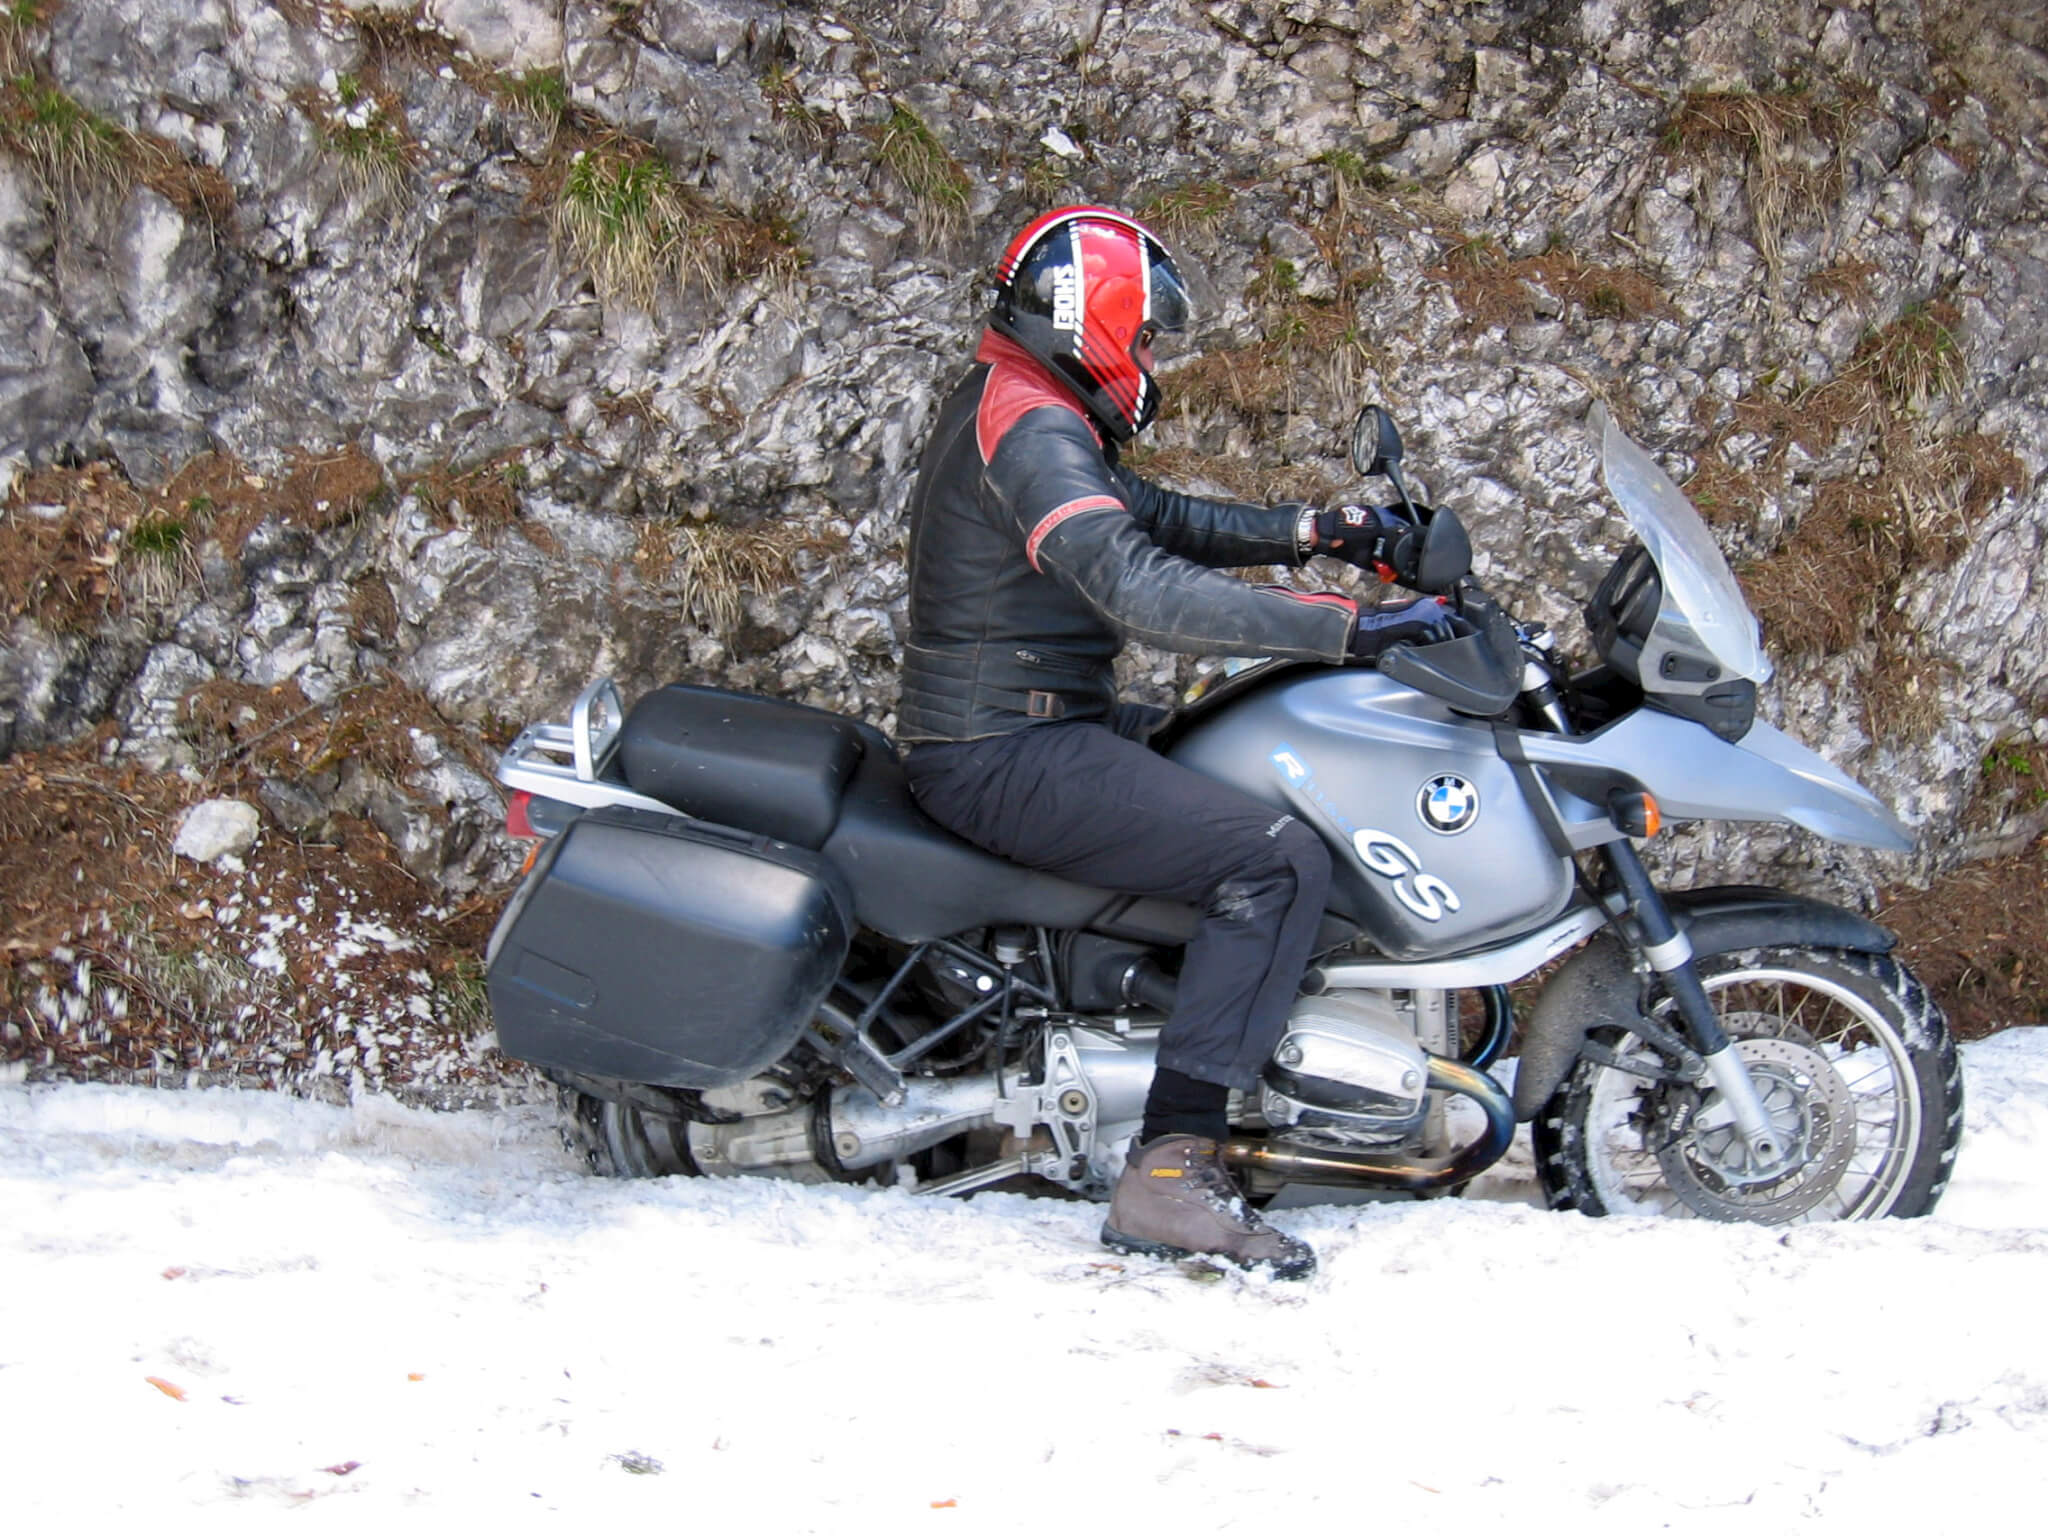 A man riding his motorcycle in the early spring, snow is on the ground